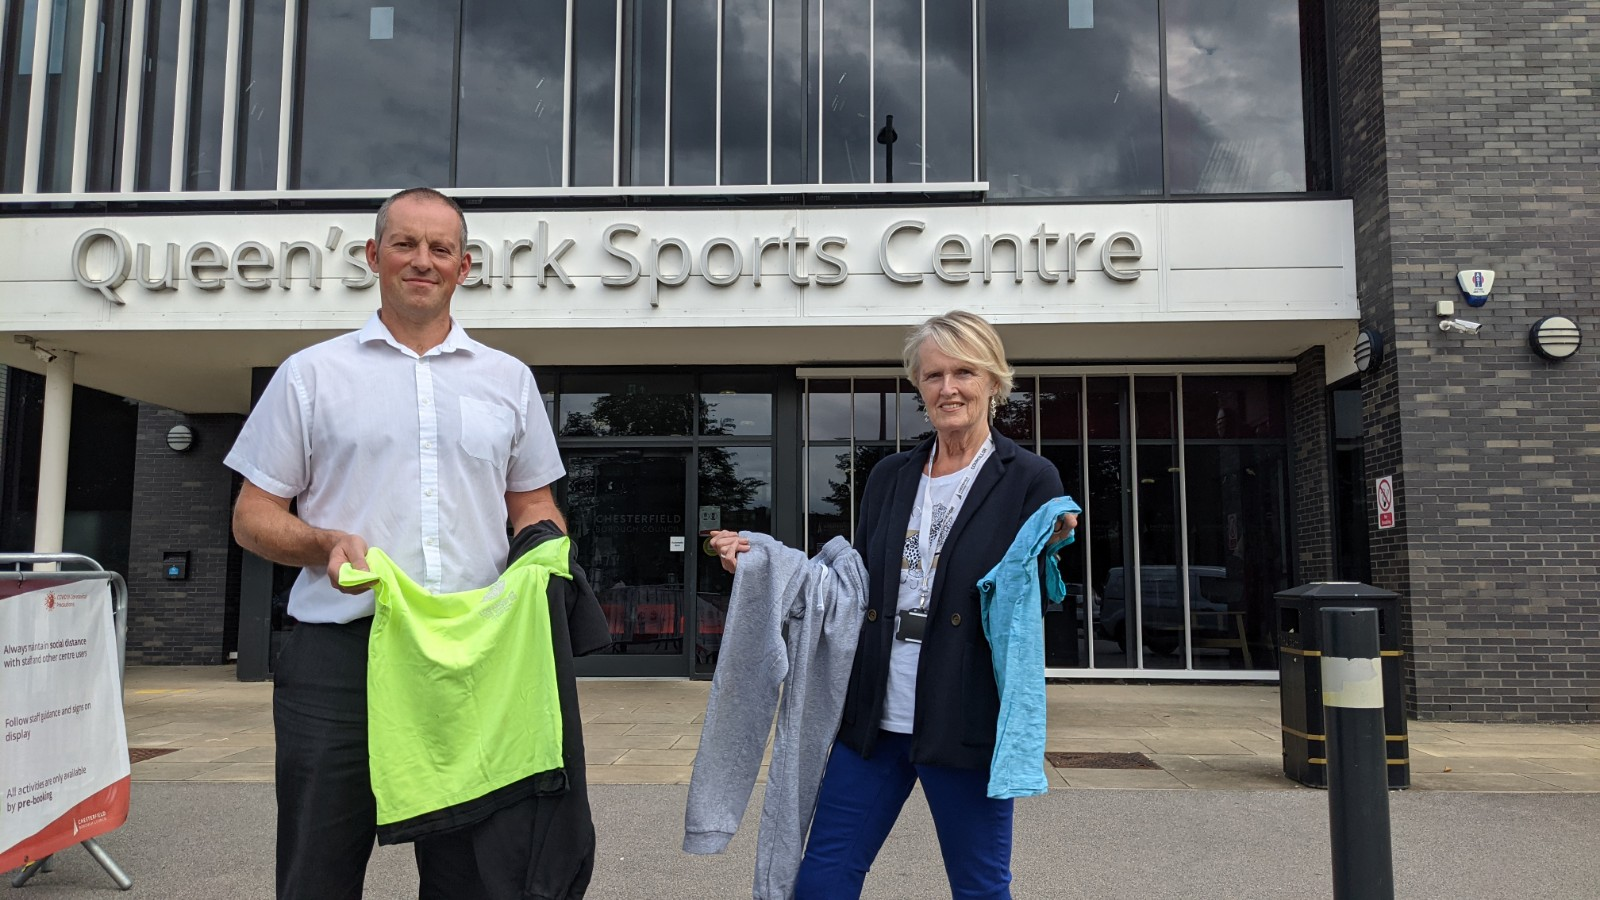 Donate unwanted sports kit at Queen's Park Sports Centre and the Healthy Living Centre